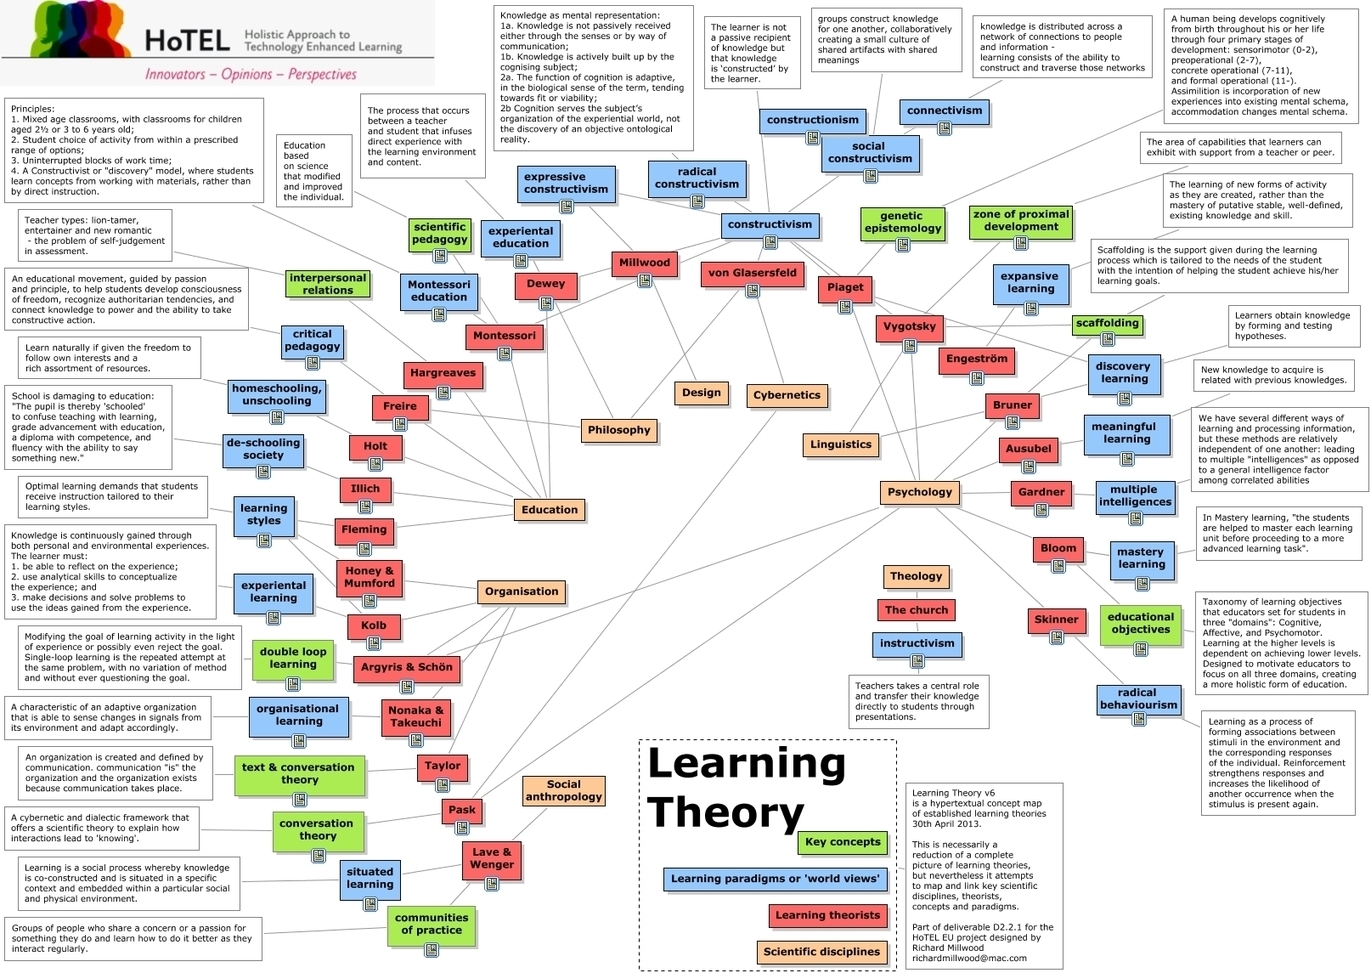 changing learning styles in the light